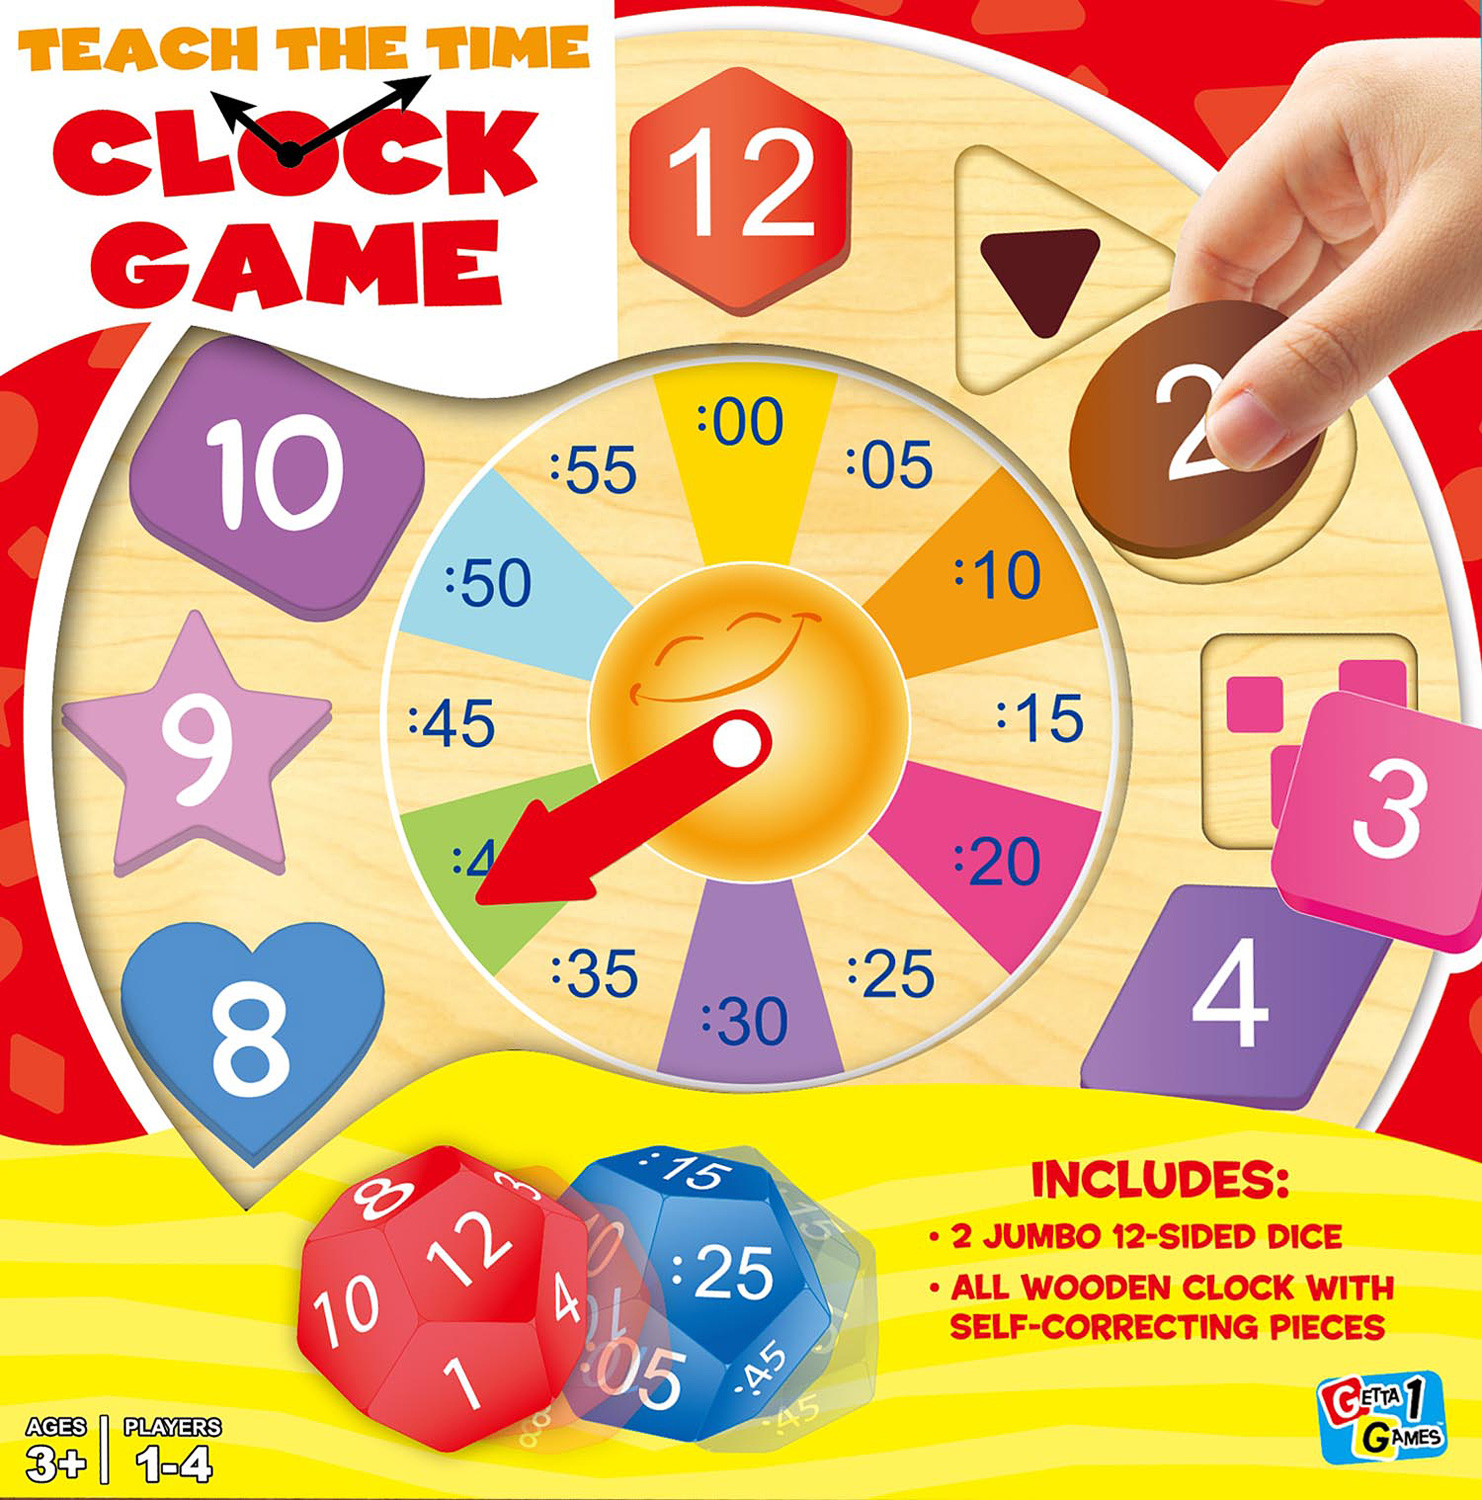 Teach the Time Clock Game